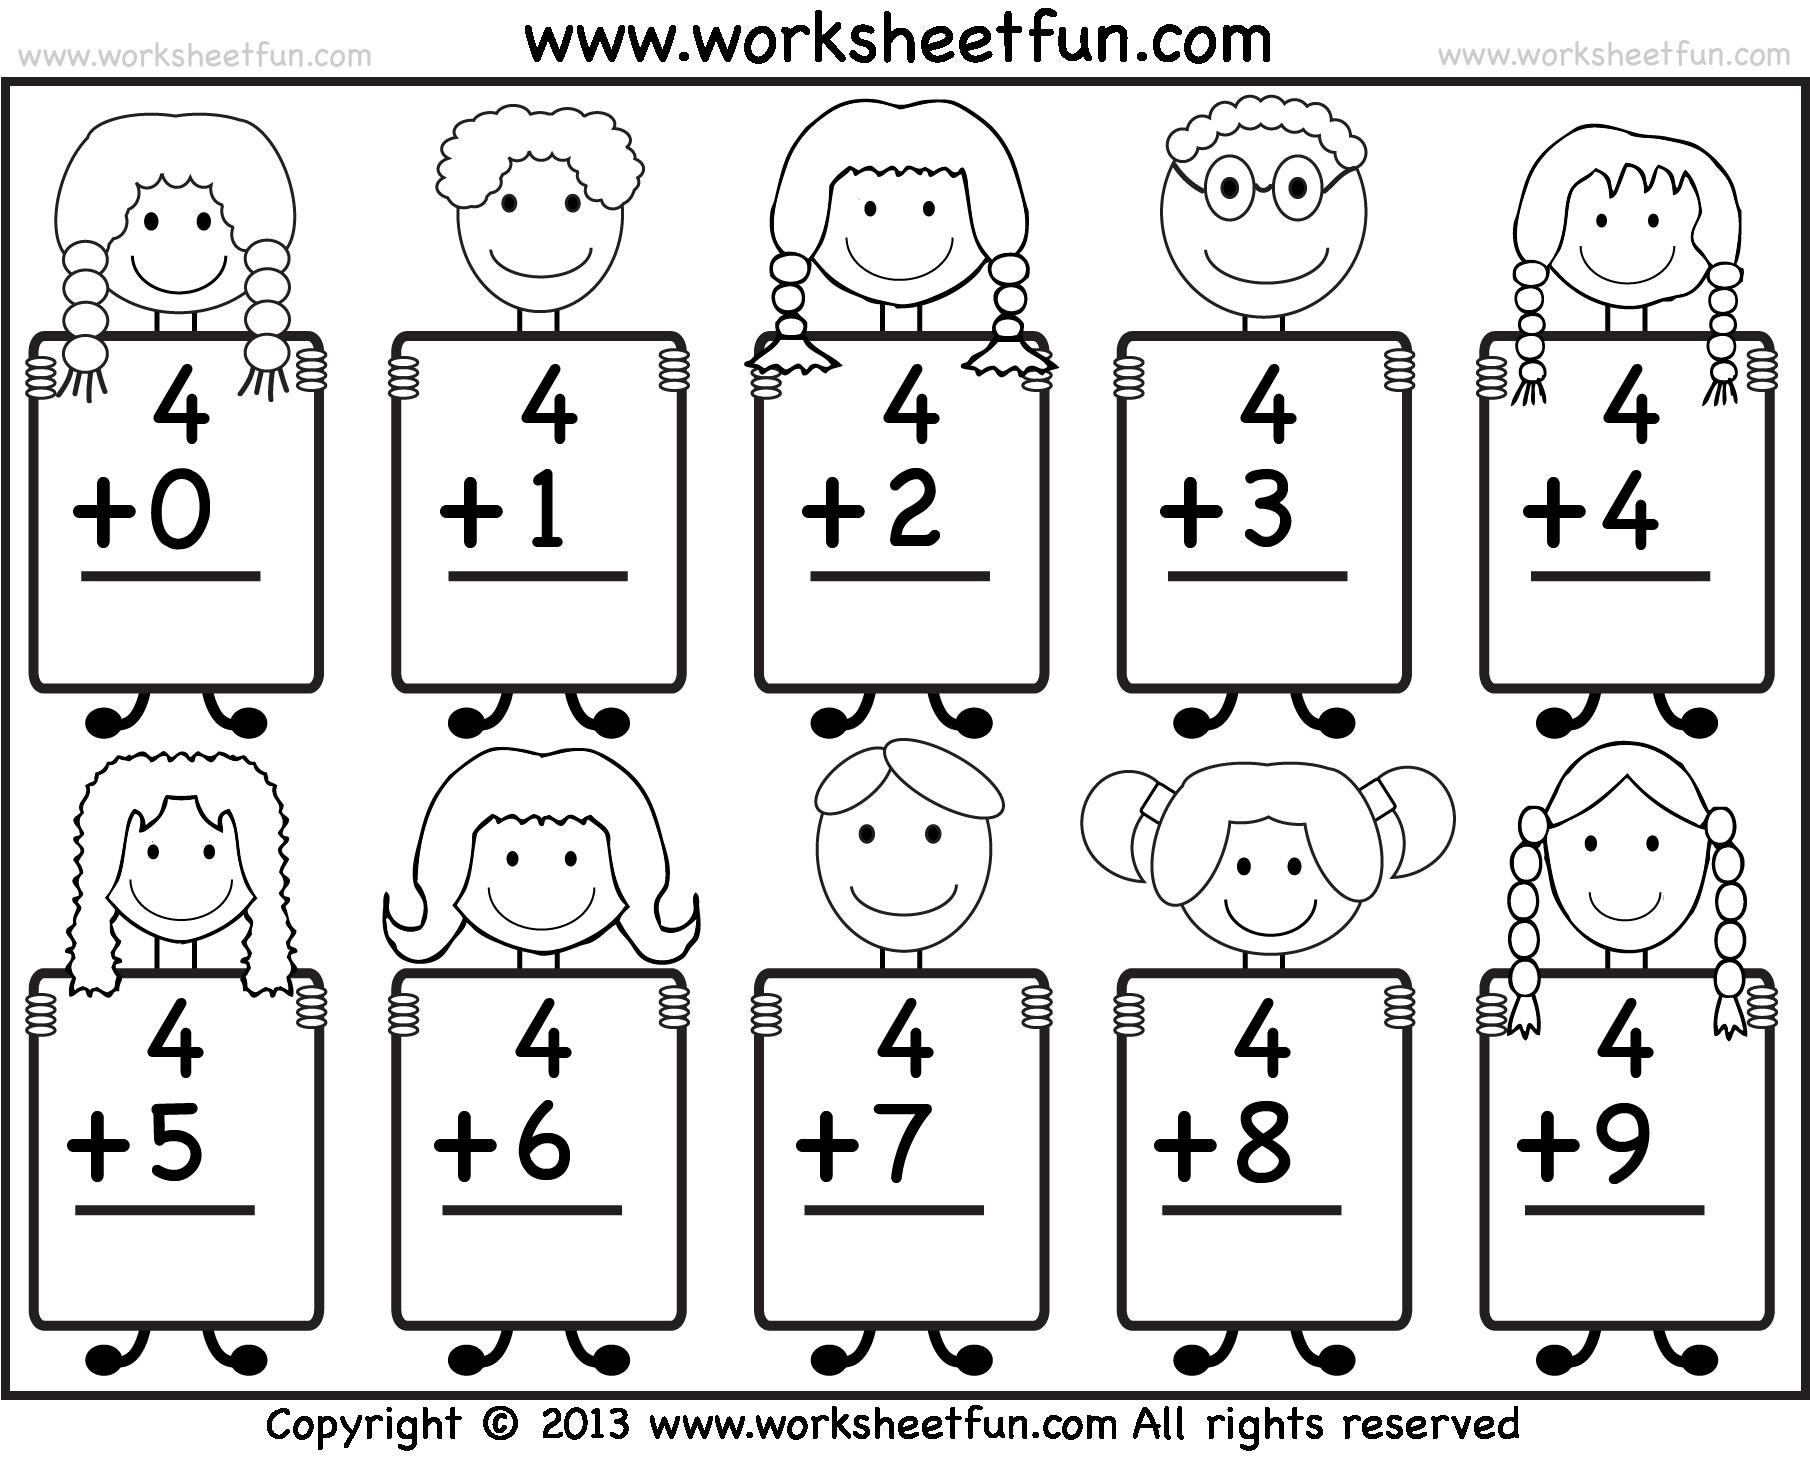 freeprintablemathworksheetsforkindergartenaddition1png – Math Addition Worksheets